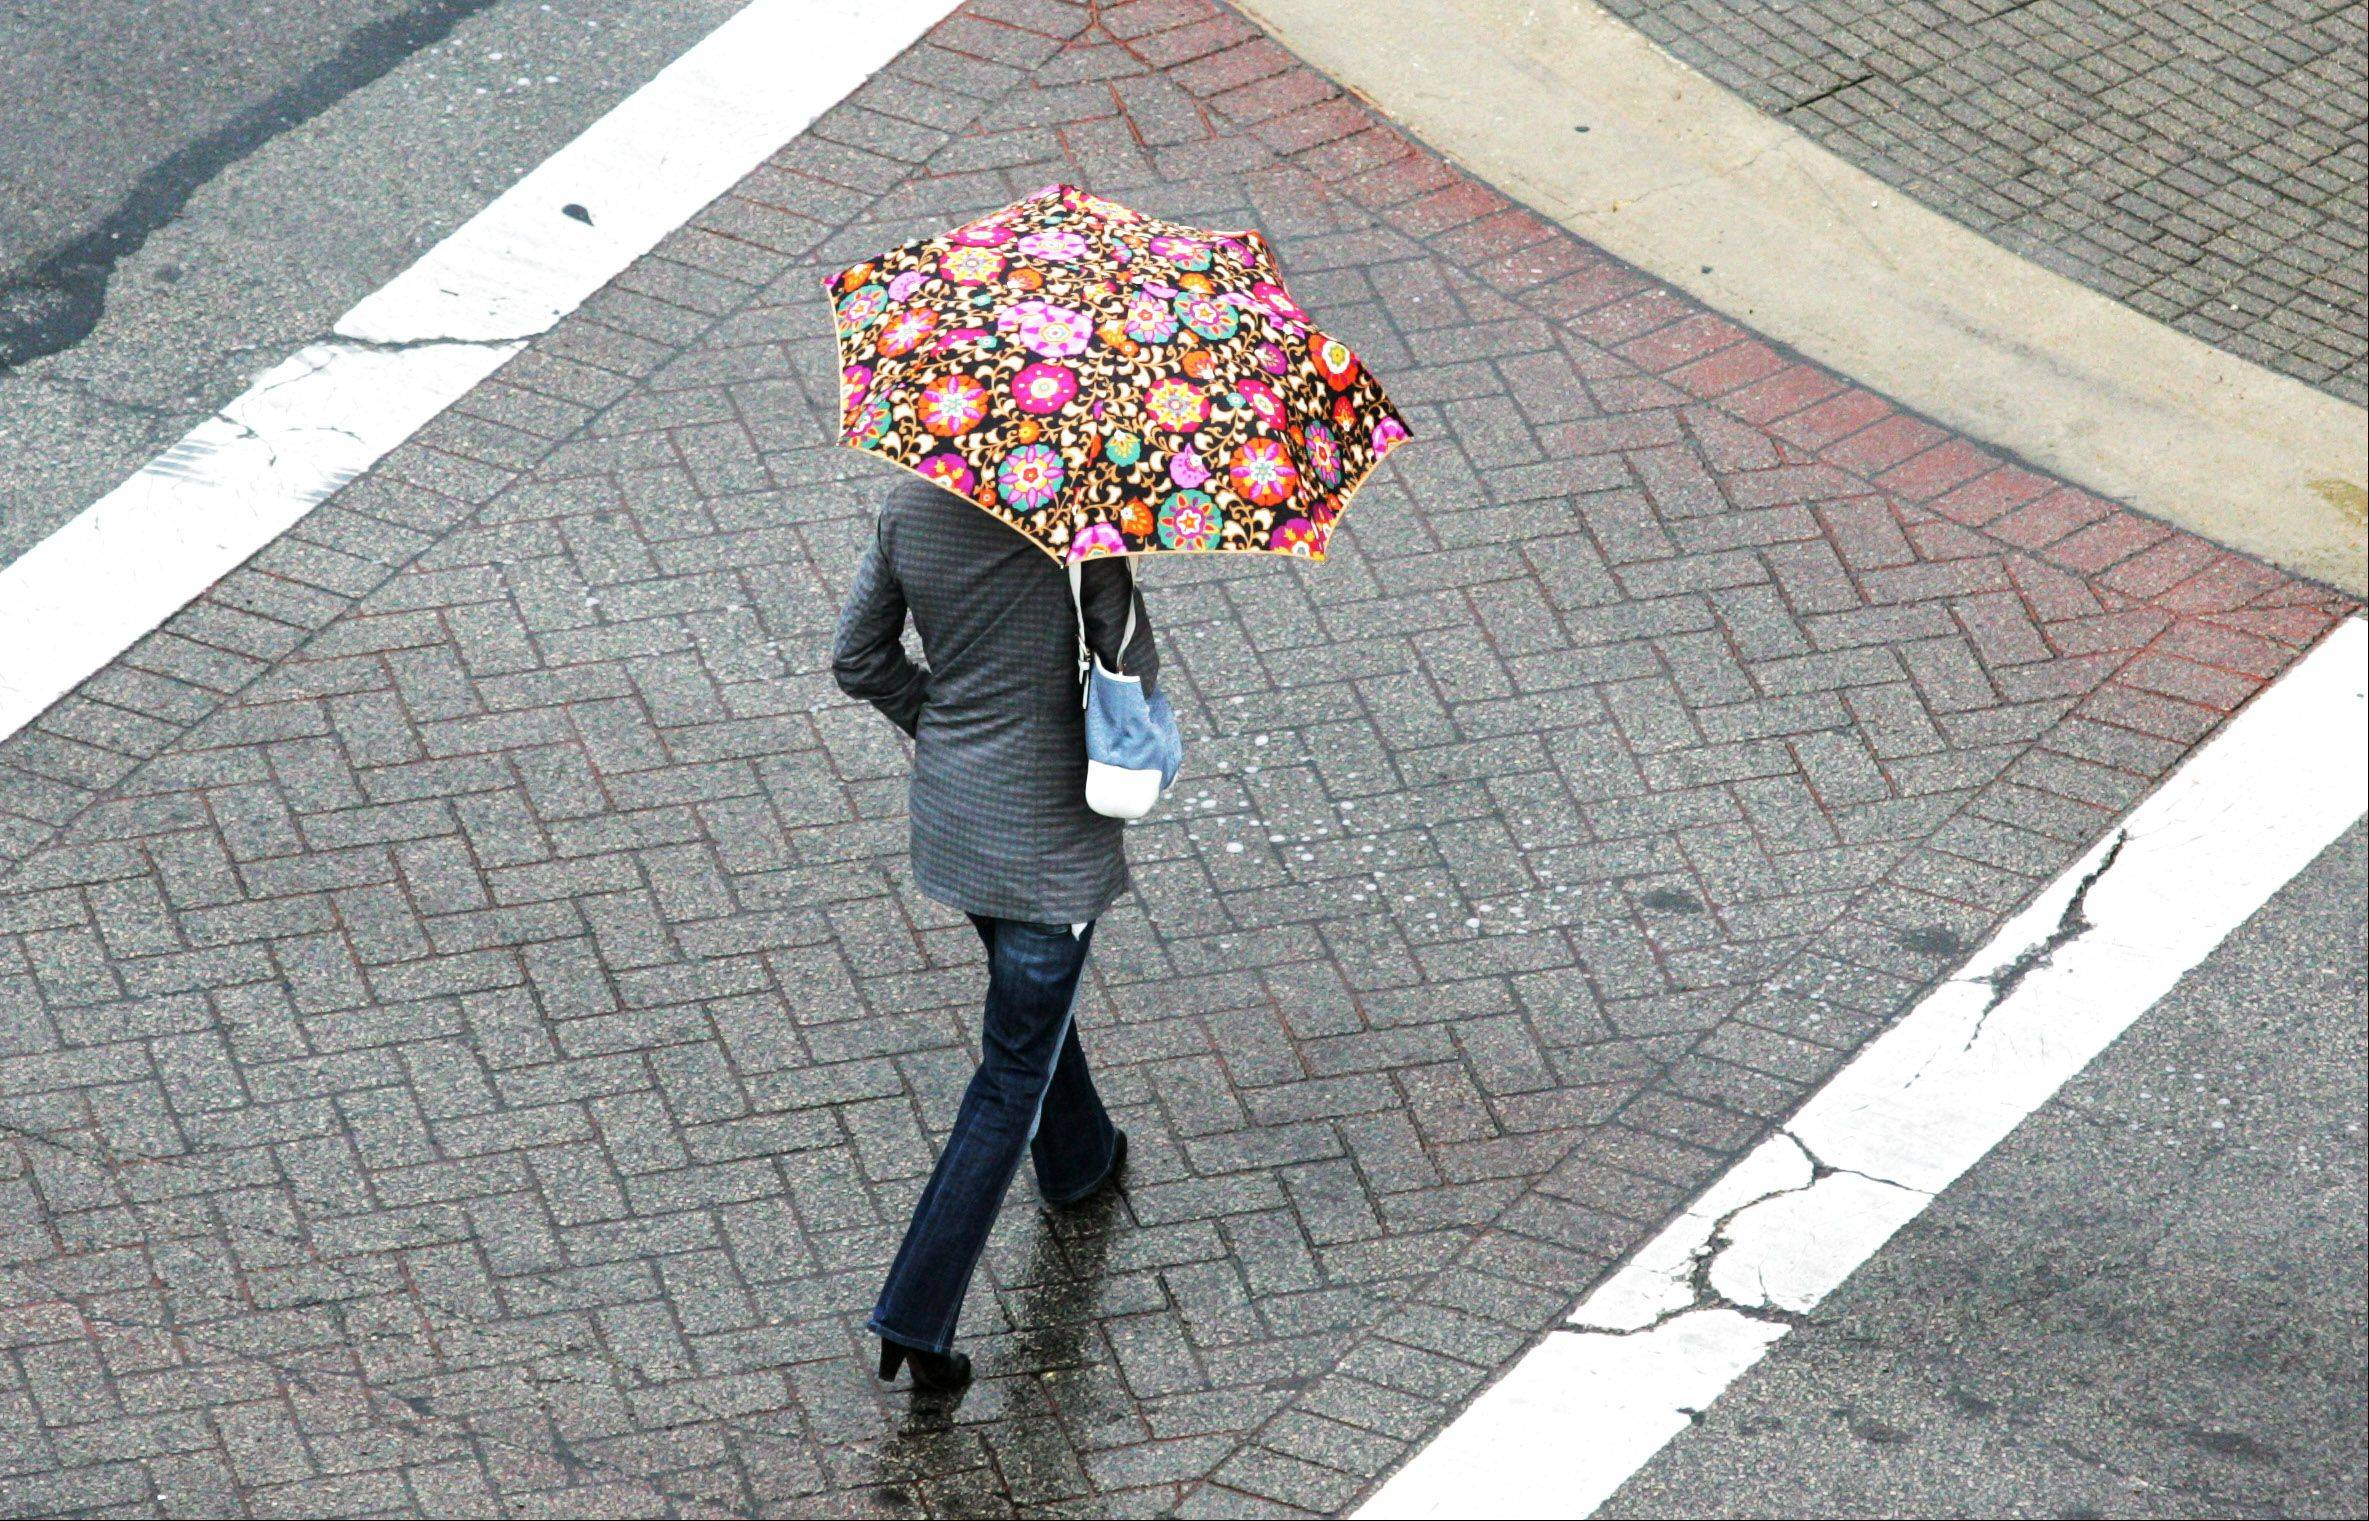 A cooling rain forces this downtown Naperville shopper to dig for her umbrellas while crossing the Main St. and Van Buren Ave. intersection.